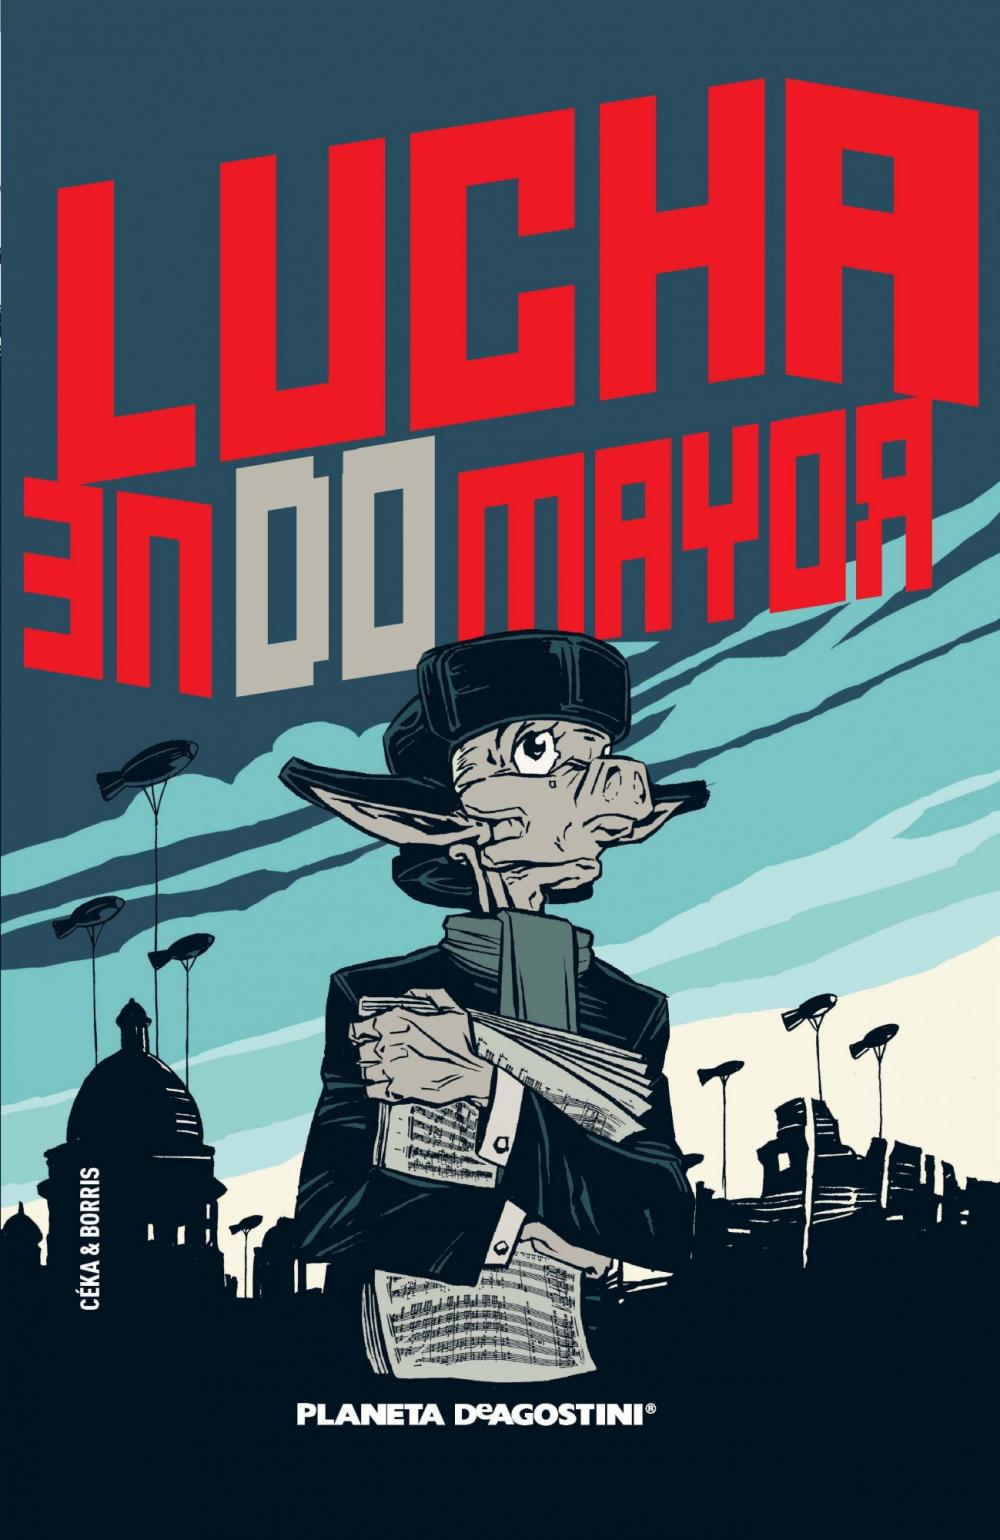 Lucha en do mayor (Lutte majeure)